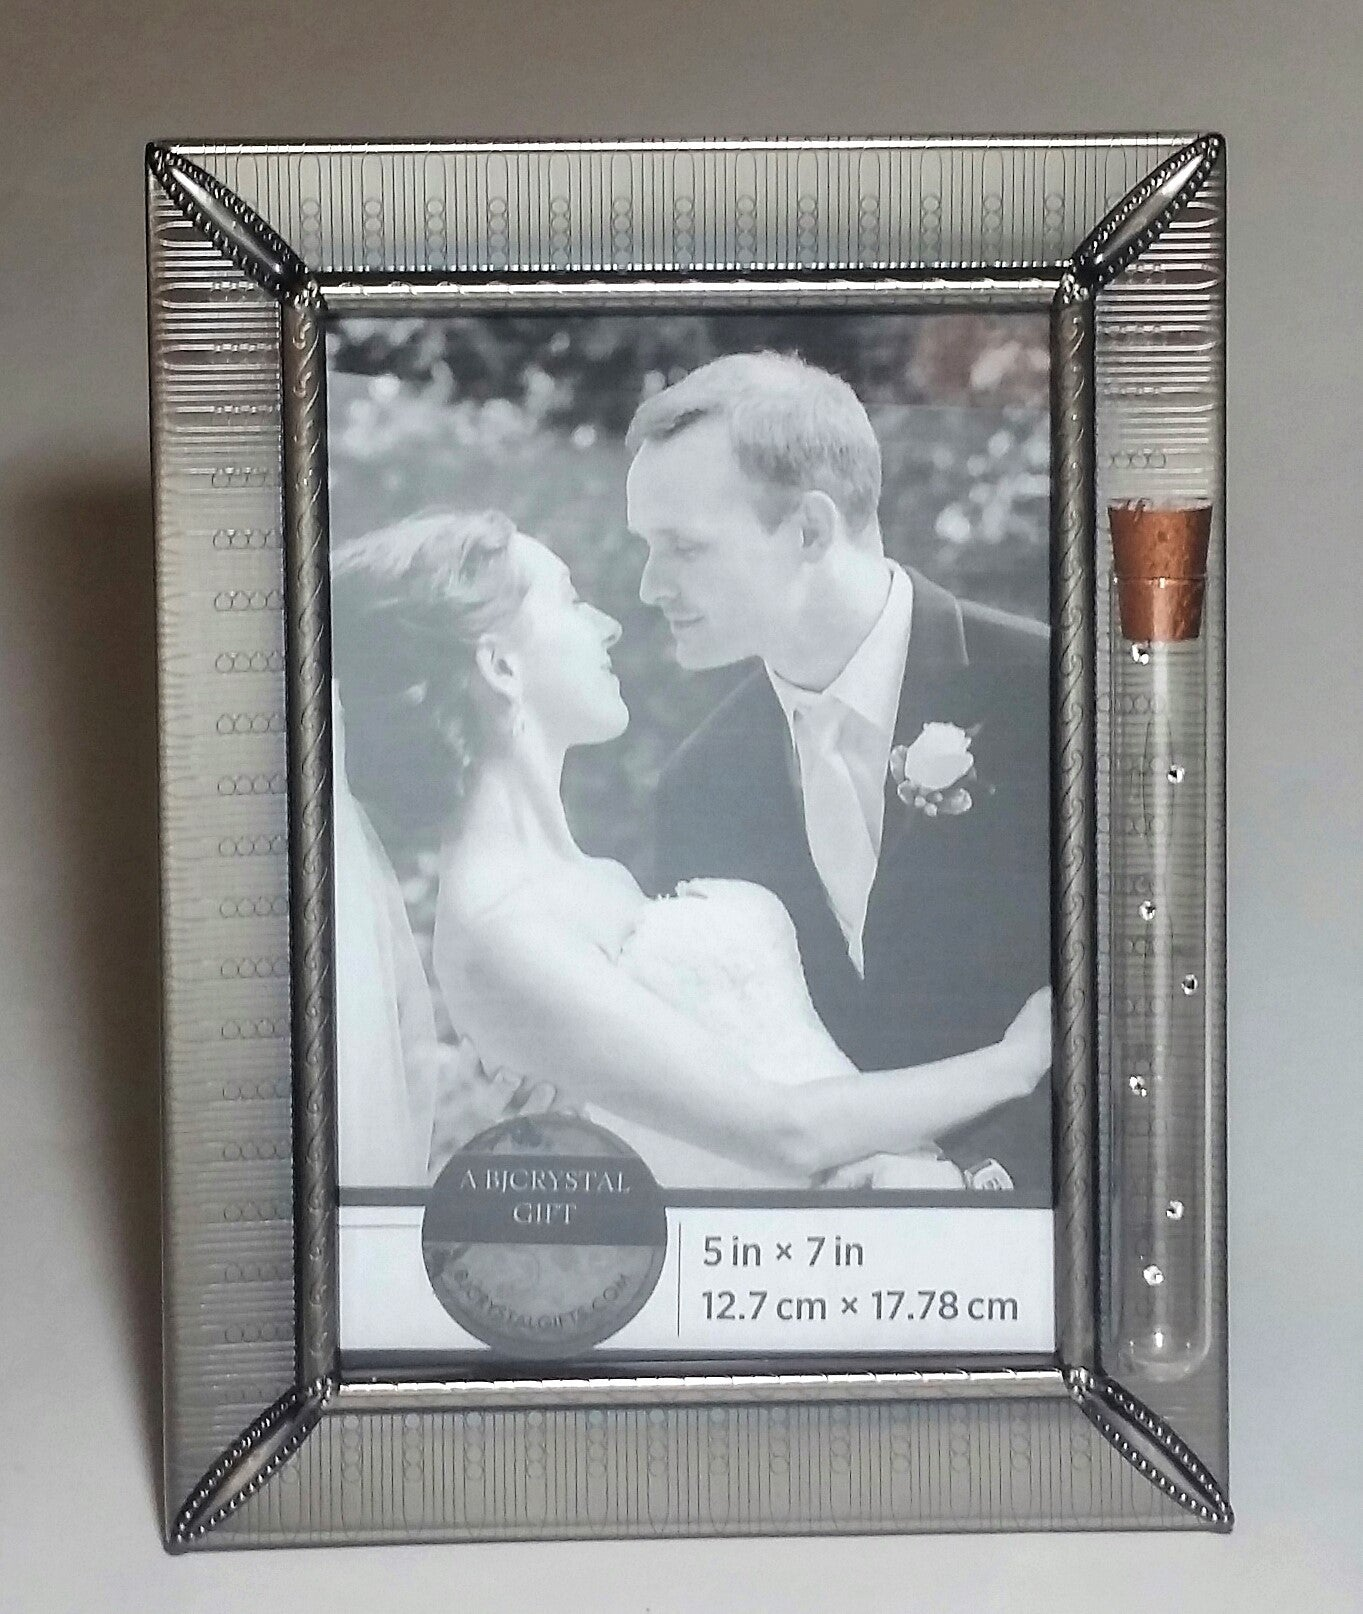 Jewish Wedding Picture Frame - Jewish Engagement Gift - 5x7 inch Picture - Chuppah - Holds Shards